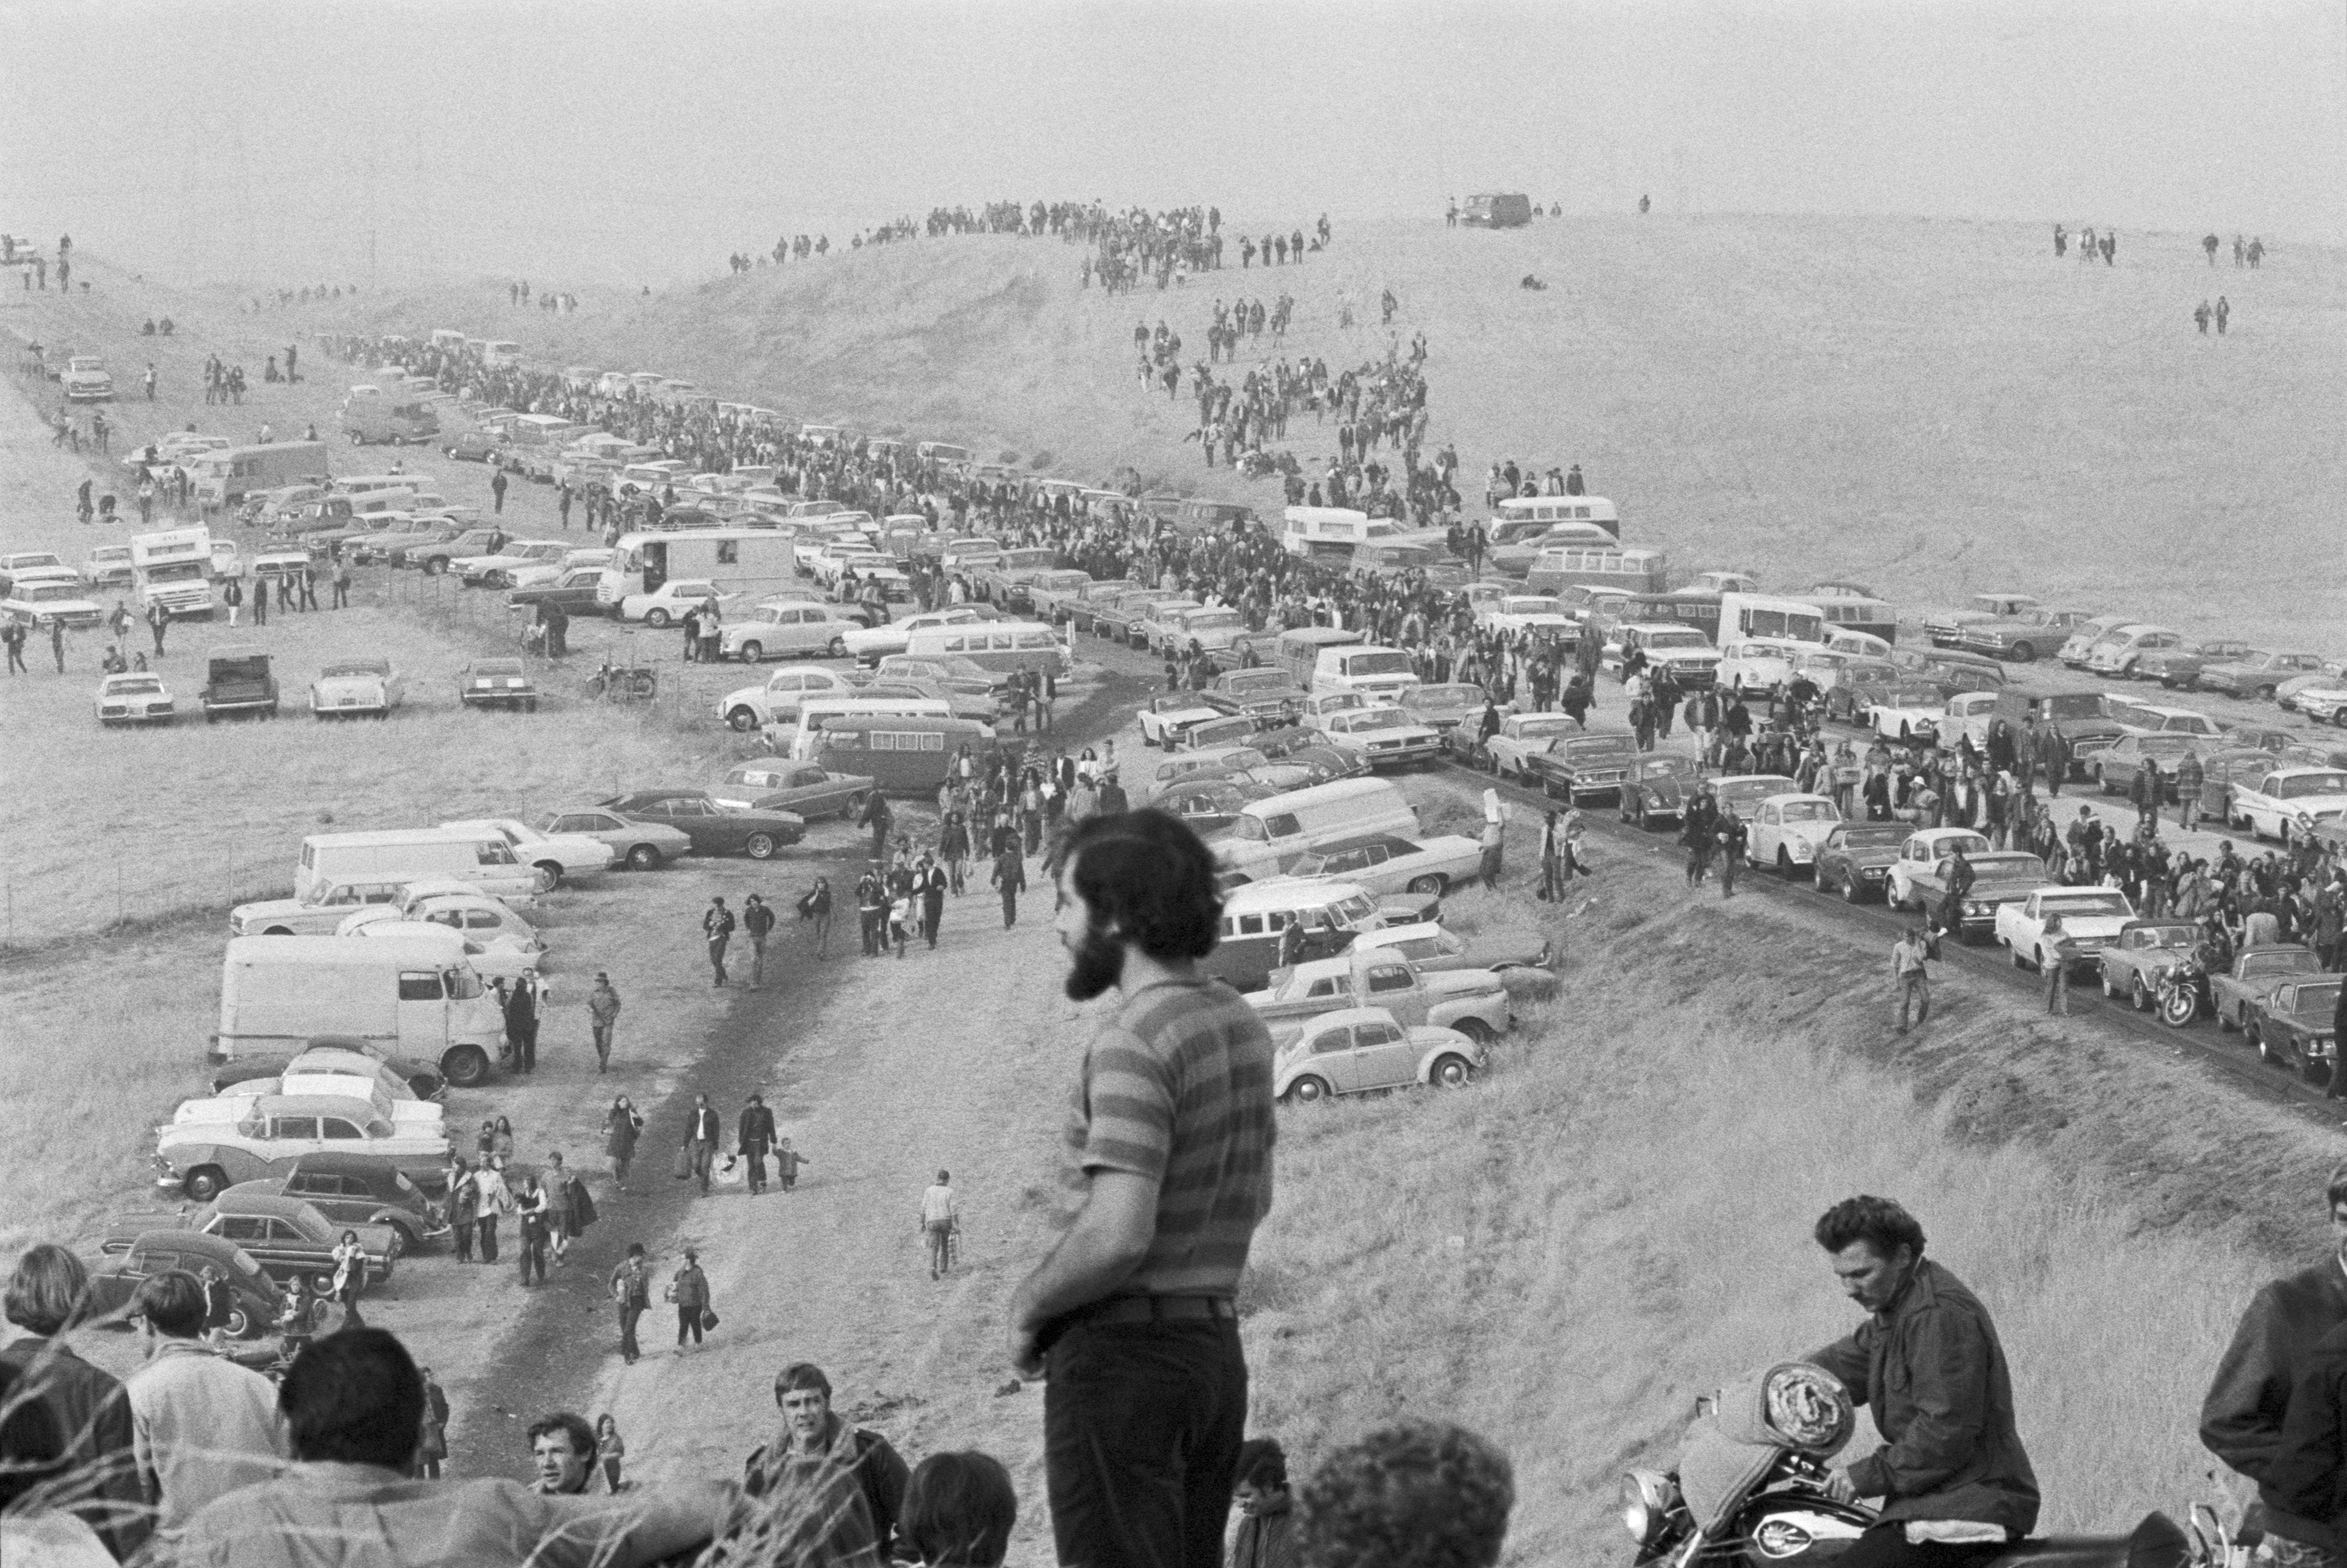 People arrive at the Altamont Speedway Free Festival in northern Calif., Dec. 6, 1969